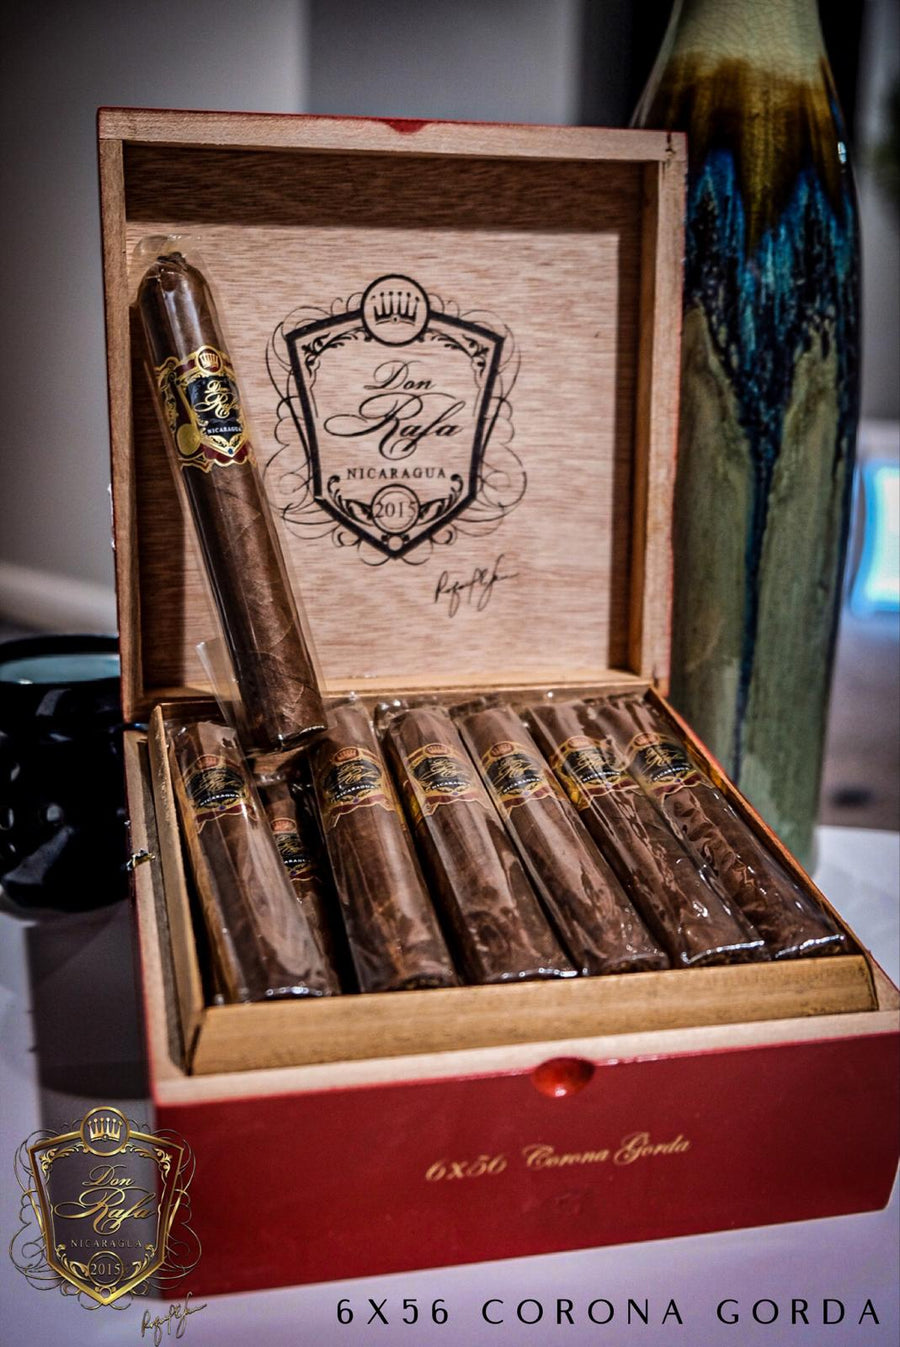 6 X 56 Corona Gorda Habano - Don Rafa Distributors